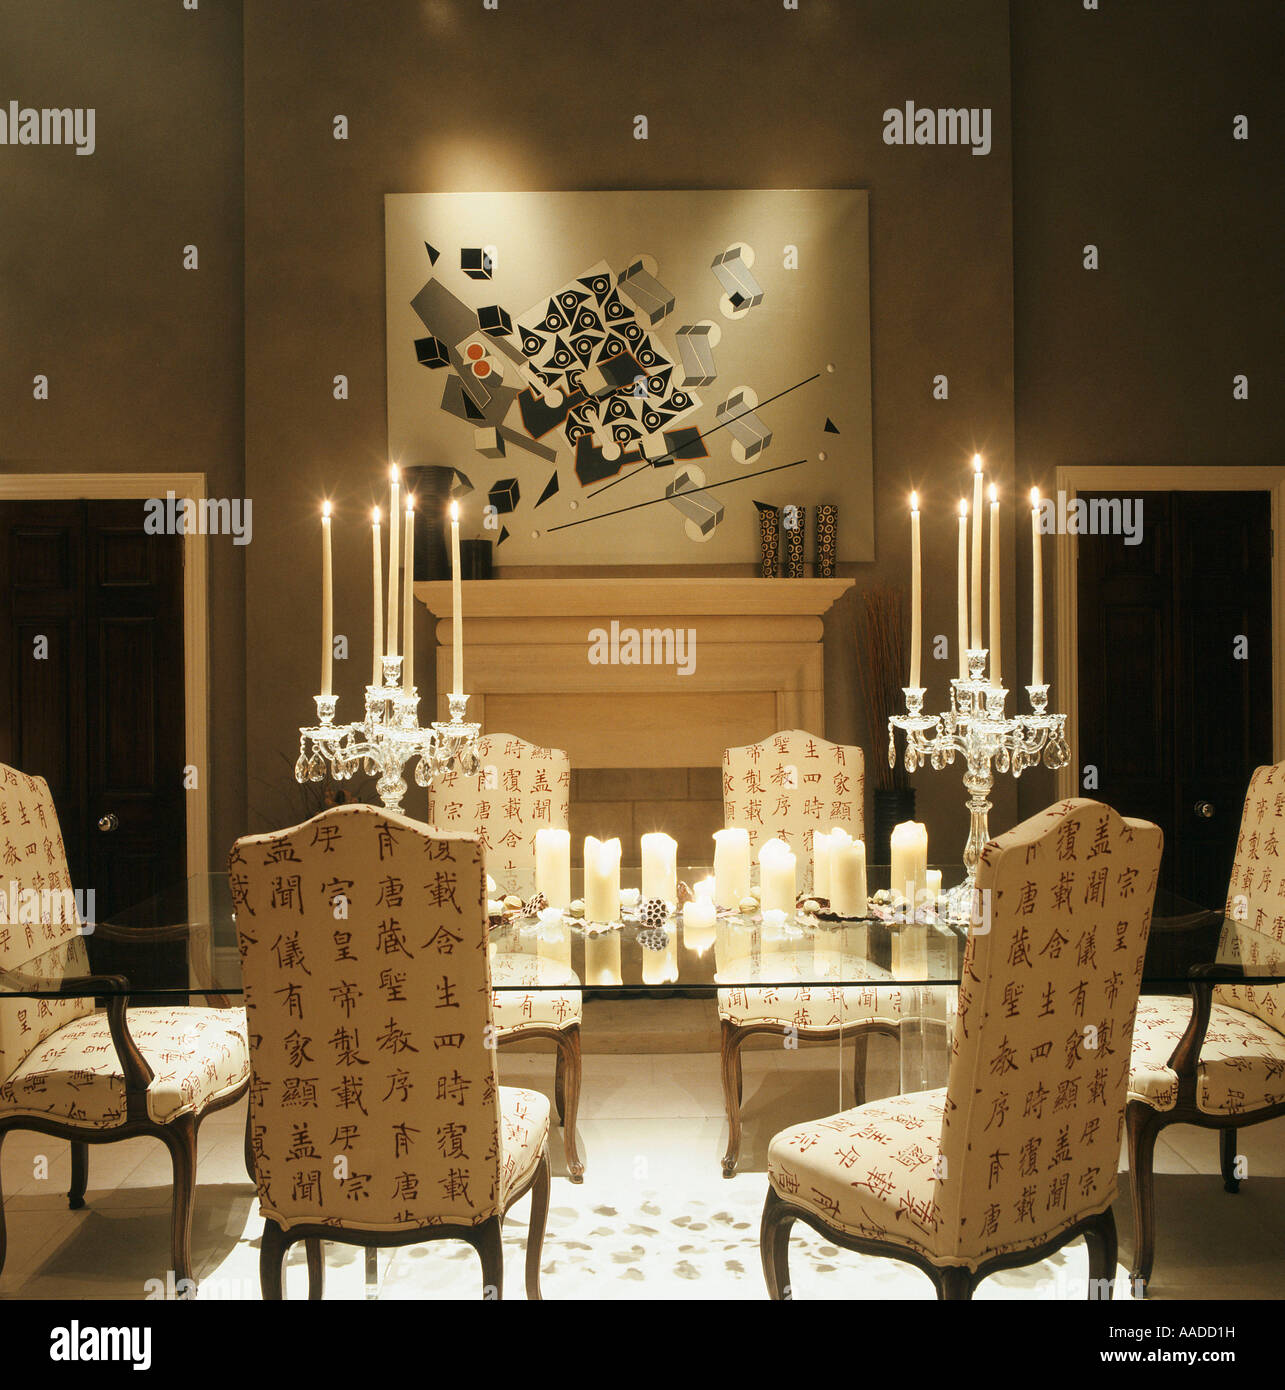 Glass Dining Table With Upholstered Chairs Lit By Candles And Artwork Over Fireplace